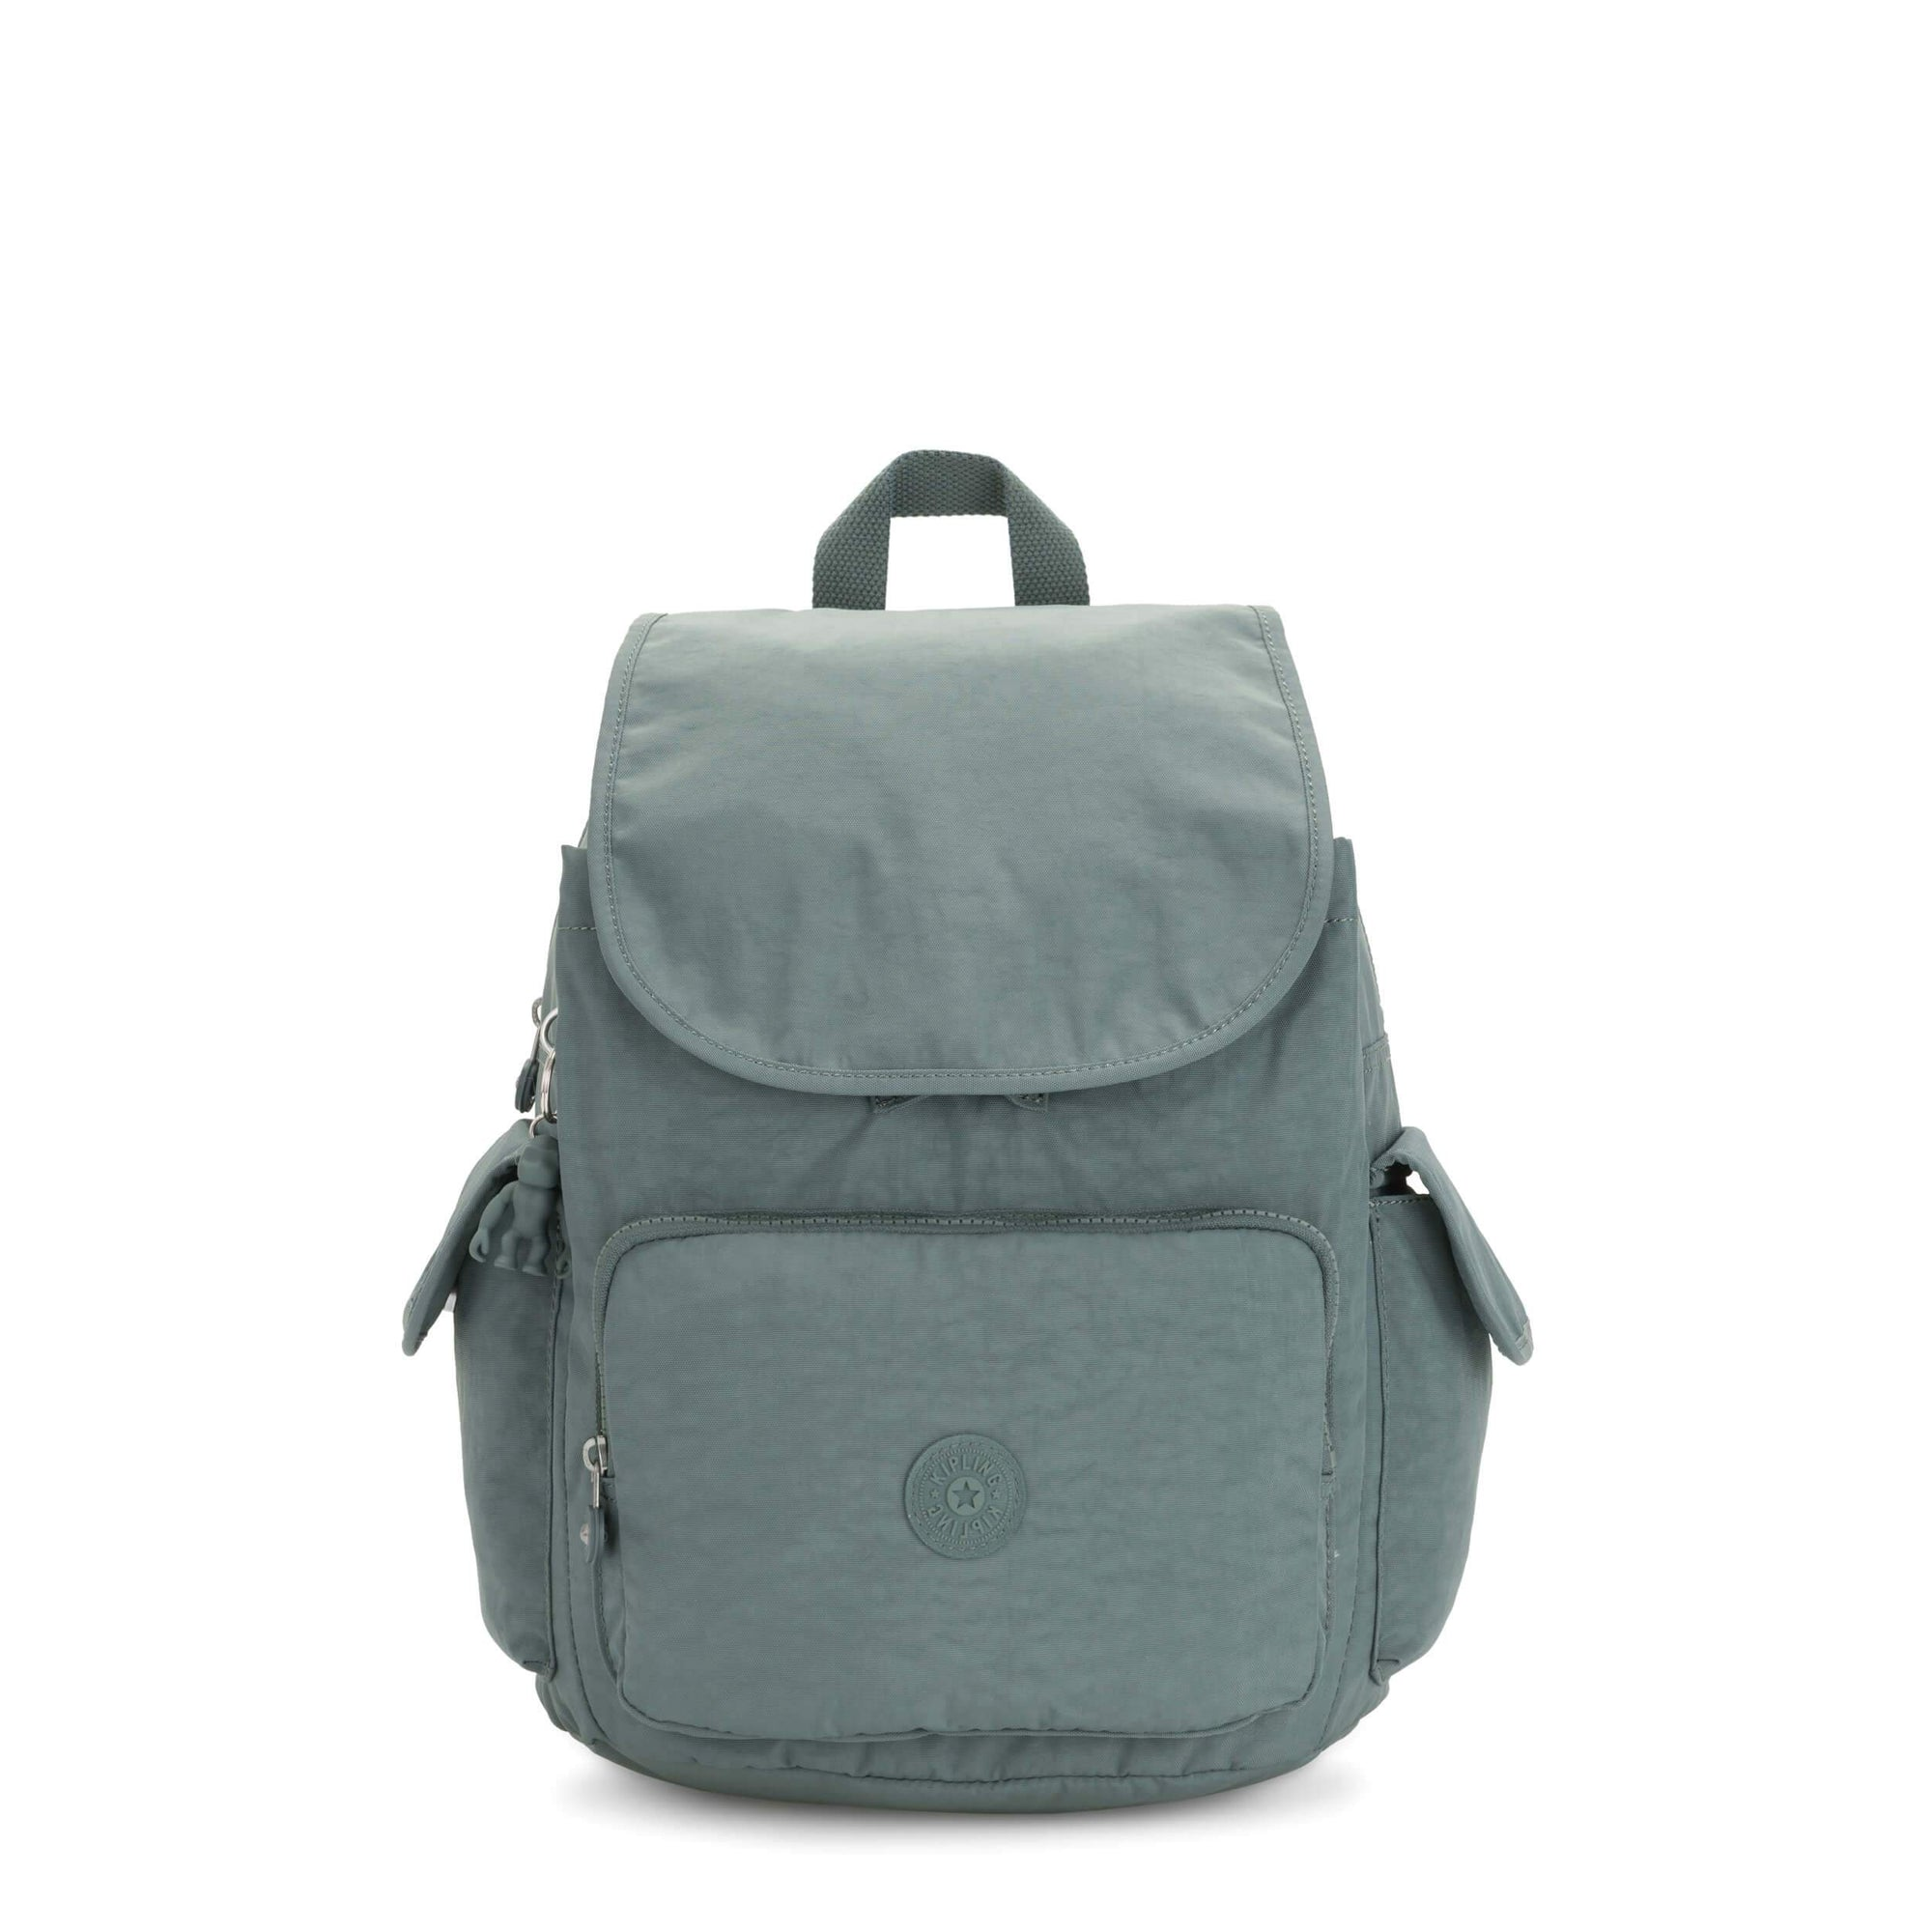 Backpack Kipling City Pack Light Aloe K1214747V